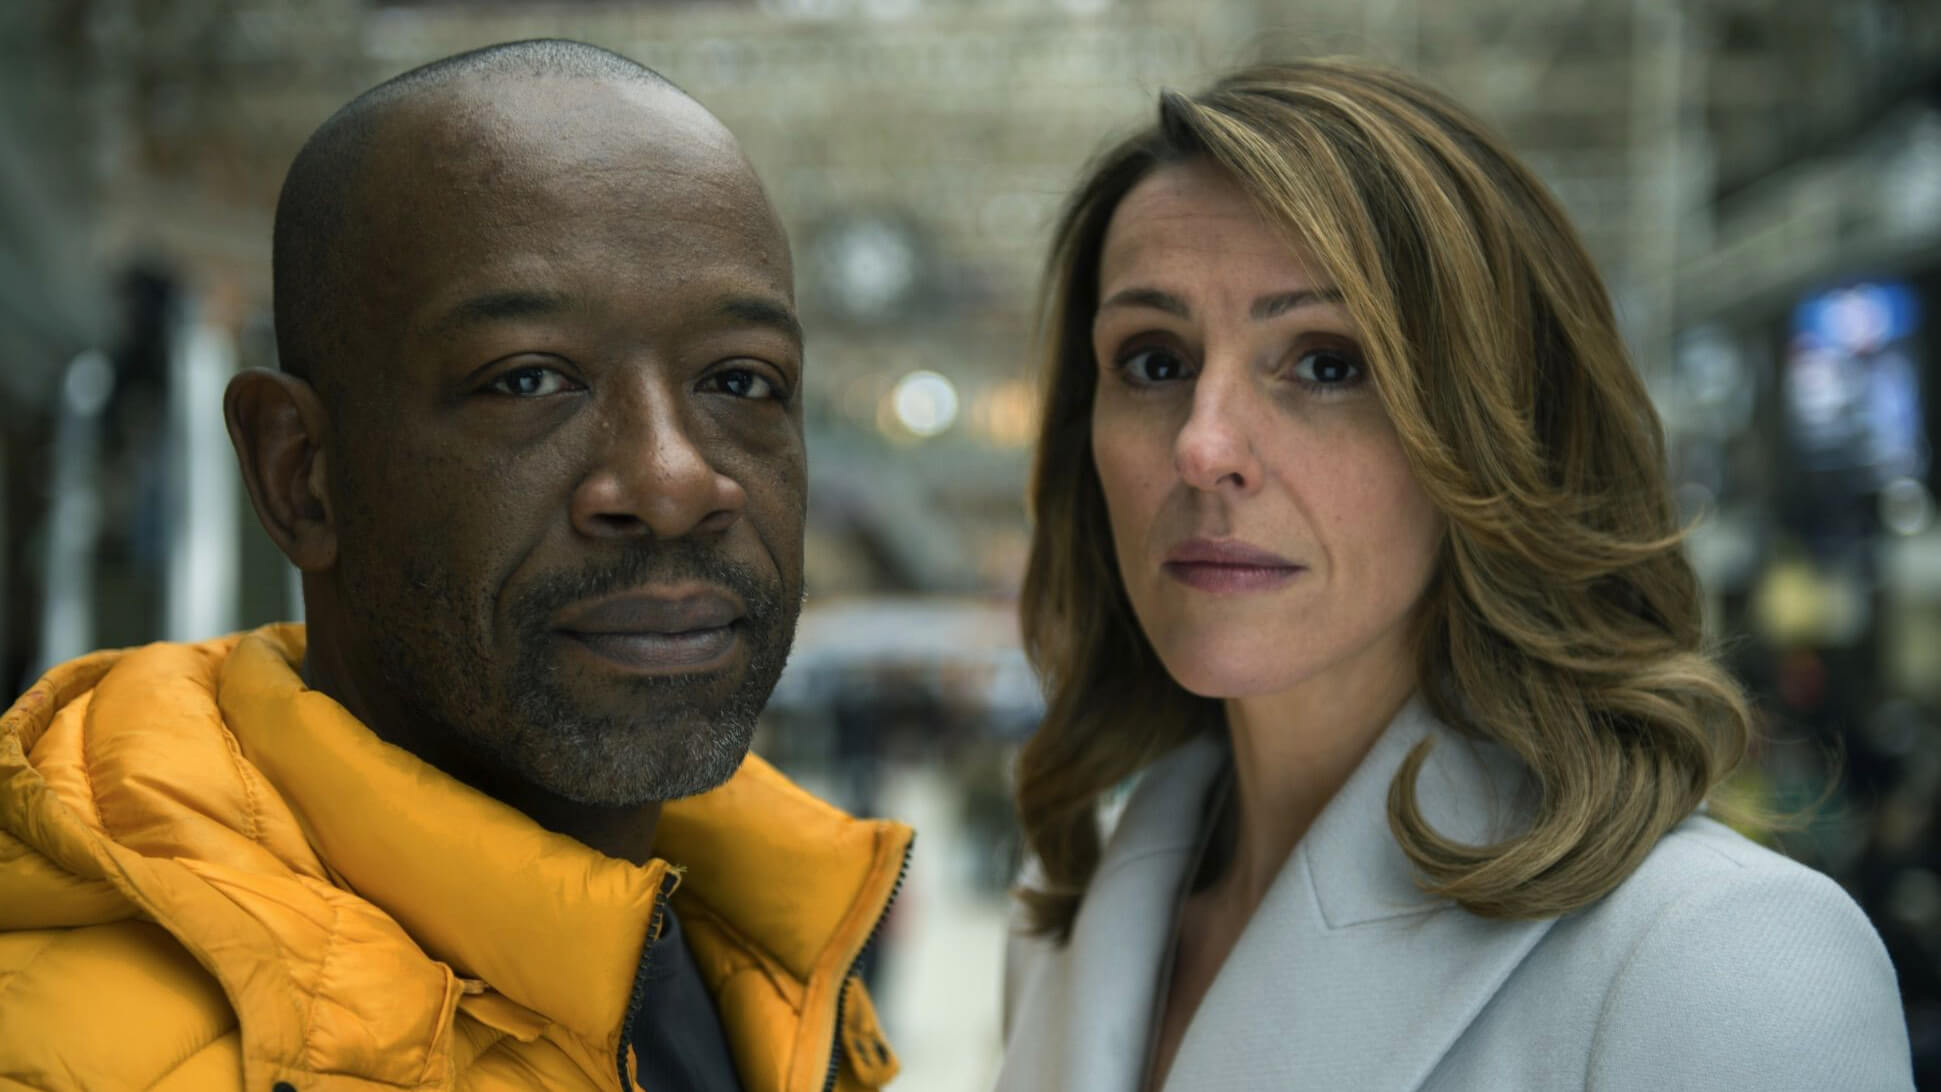 Survey finds BAME workers 'seriously under represented' in top TV roles